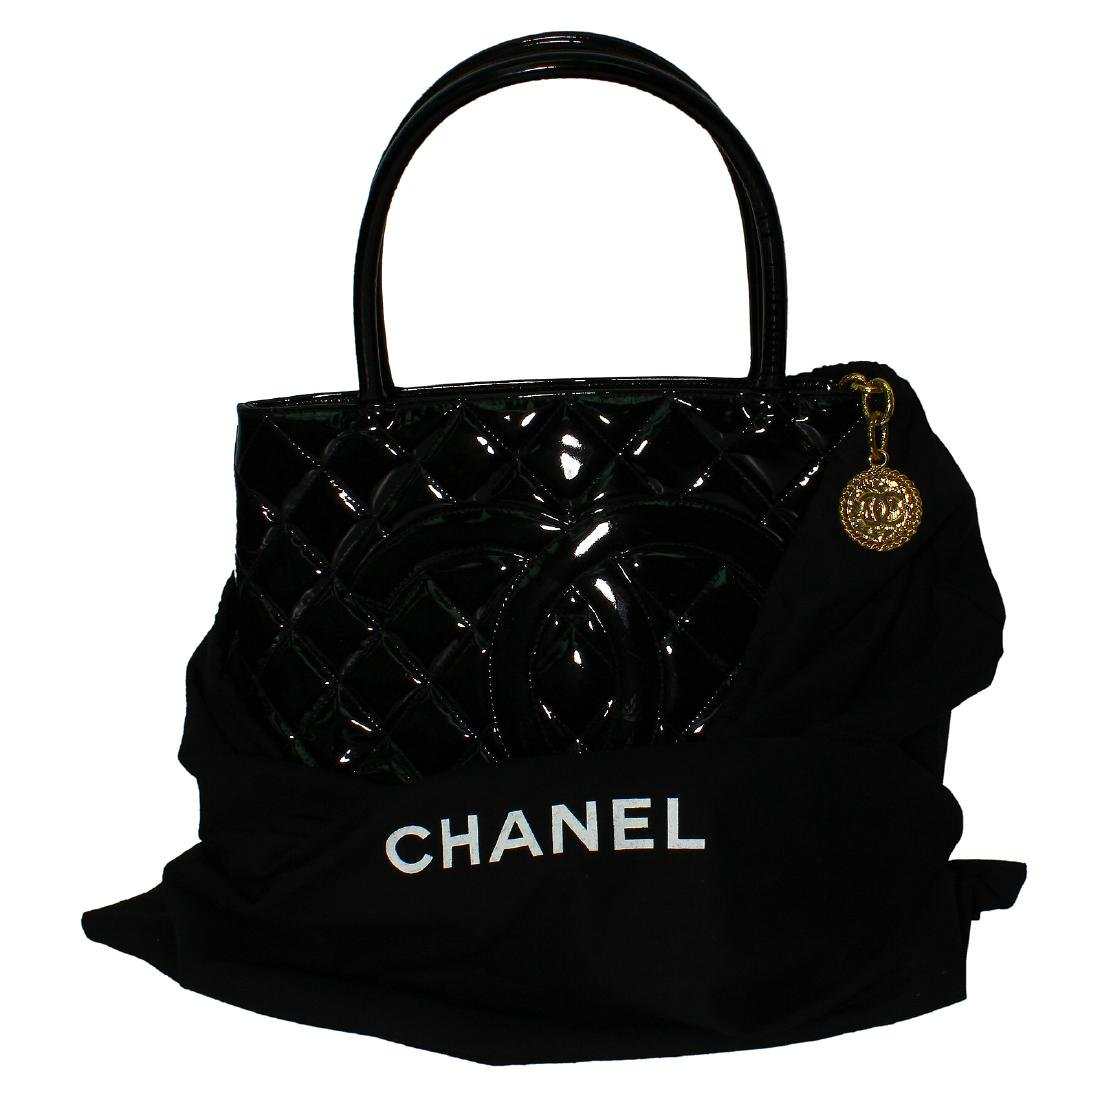 Chanel Quilted Black Patent Leather Shoulder Bag - 4